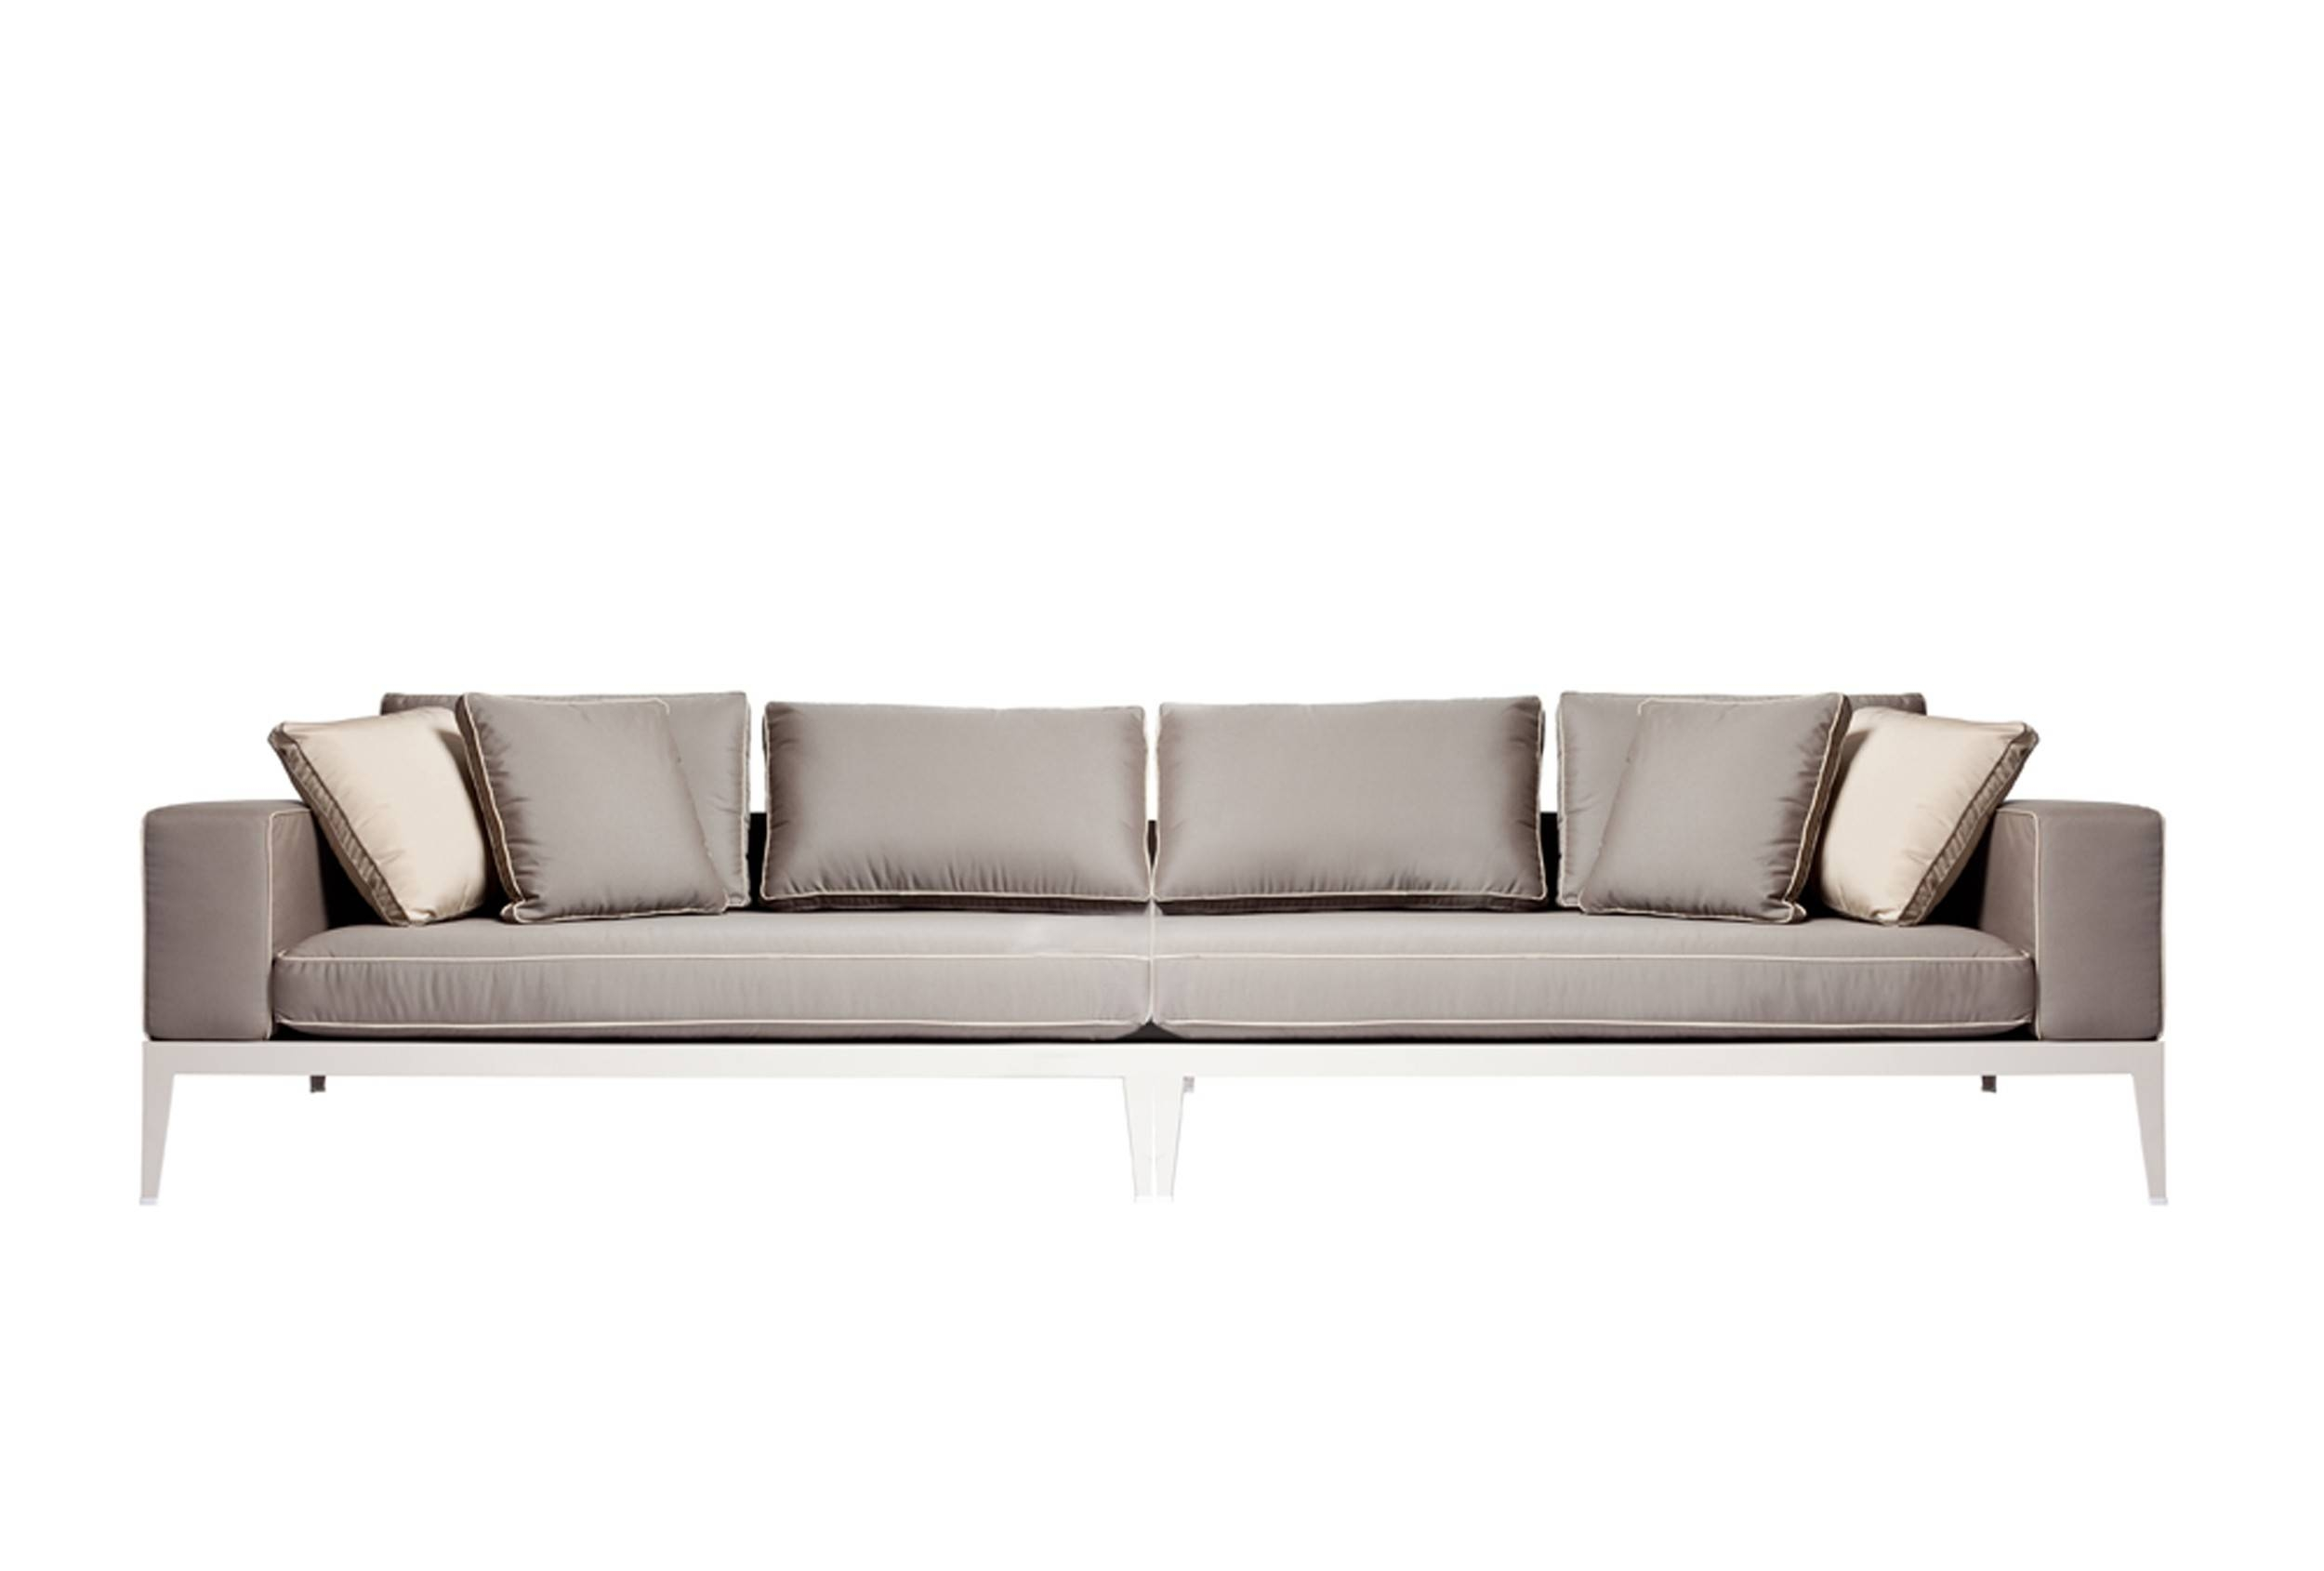 Balmoral 4 Seater Sofa | Viesso for Four Seater Sofas (Image 4 of 30)